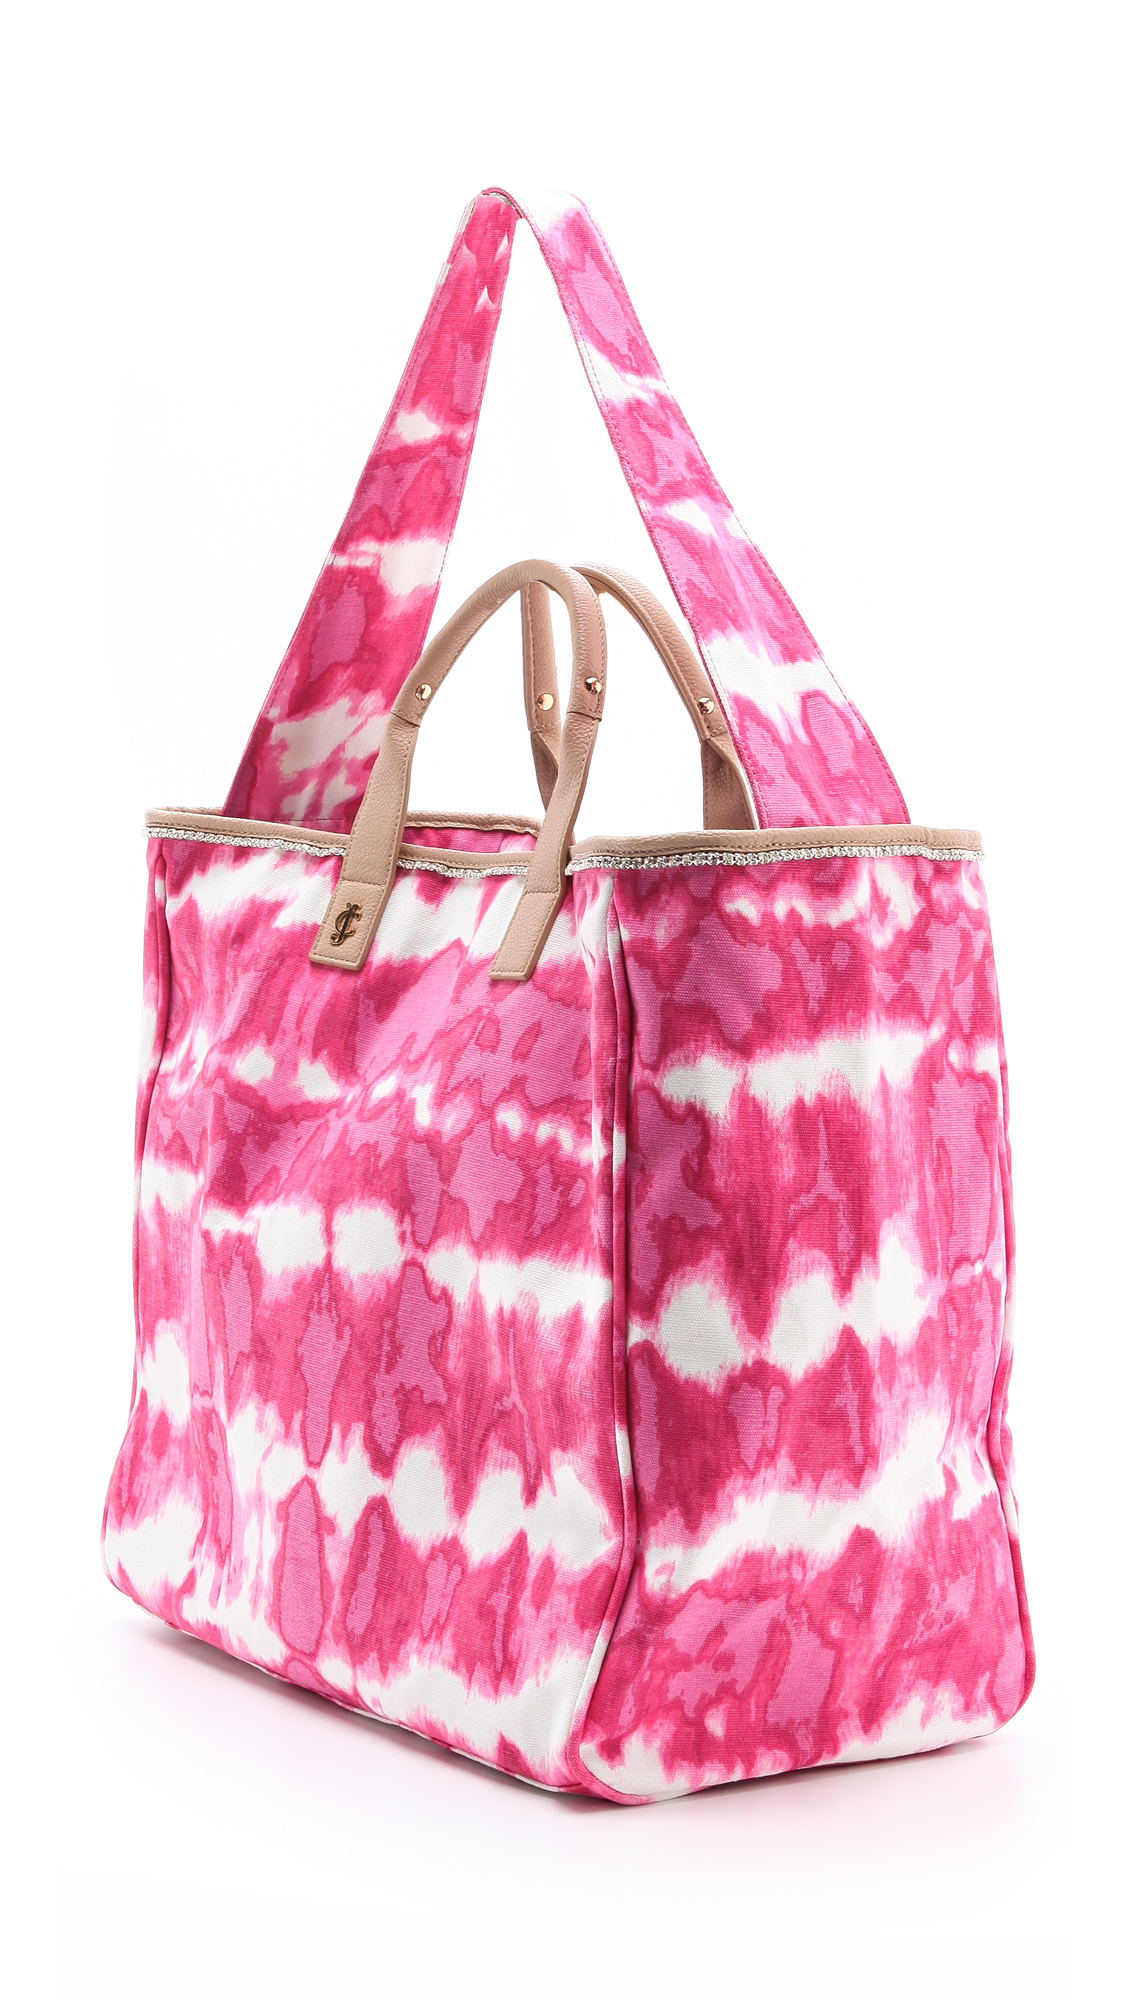 lyst juicy couture tye dye canvas beach tote in pink. Black Bedroom Furniture Sets. Home Design Ideas